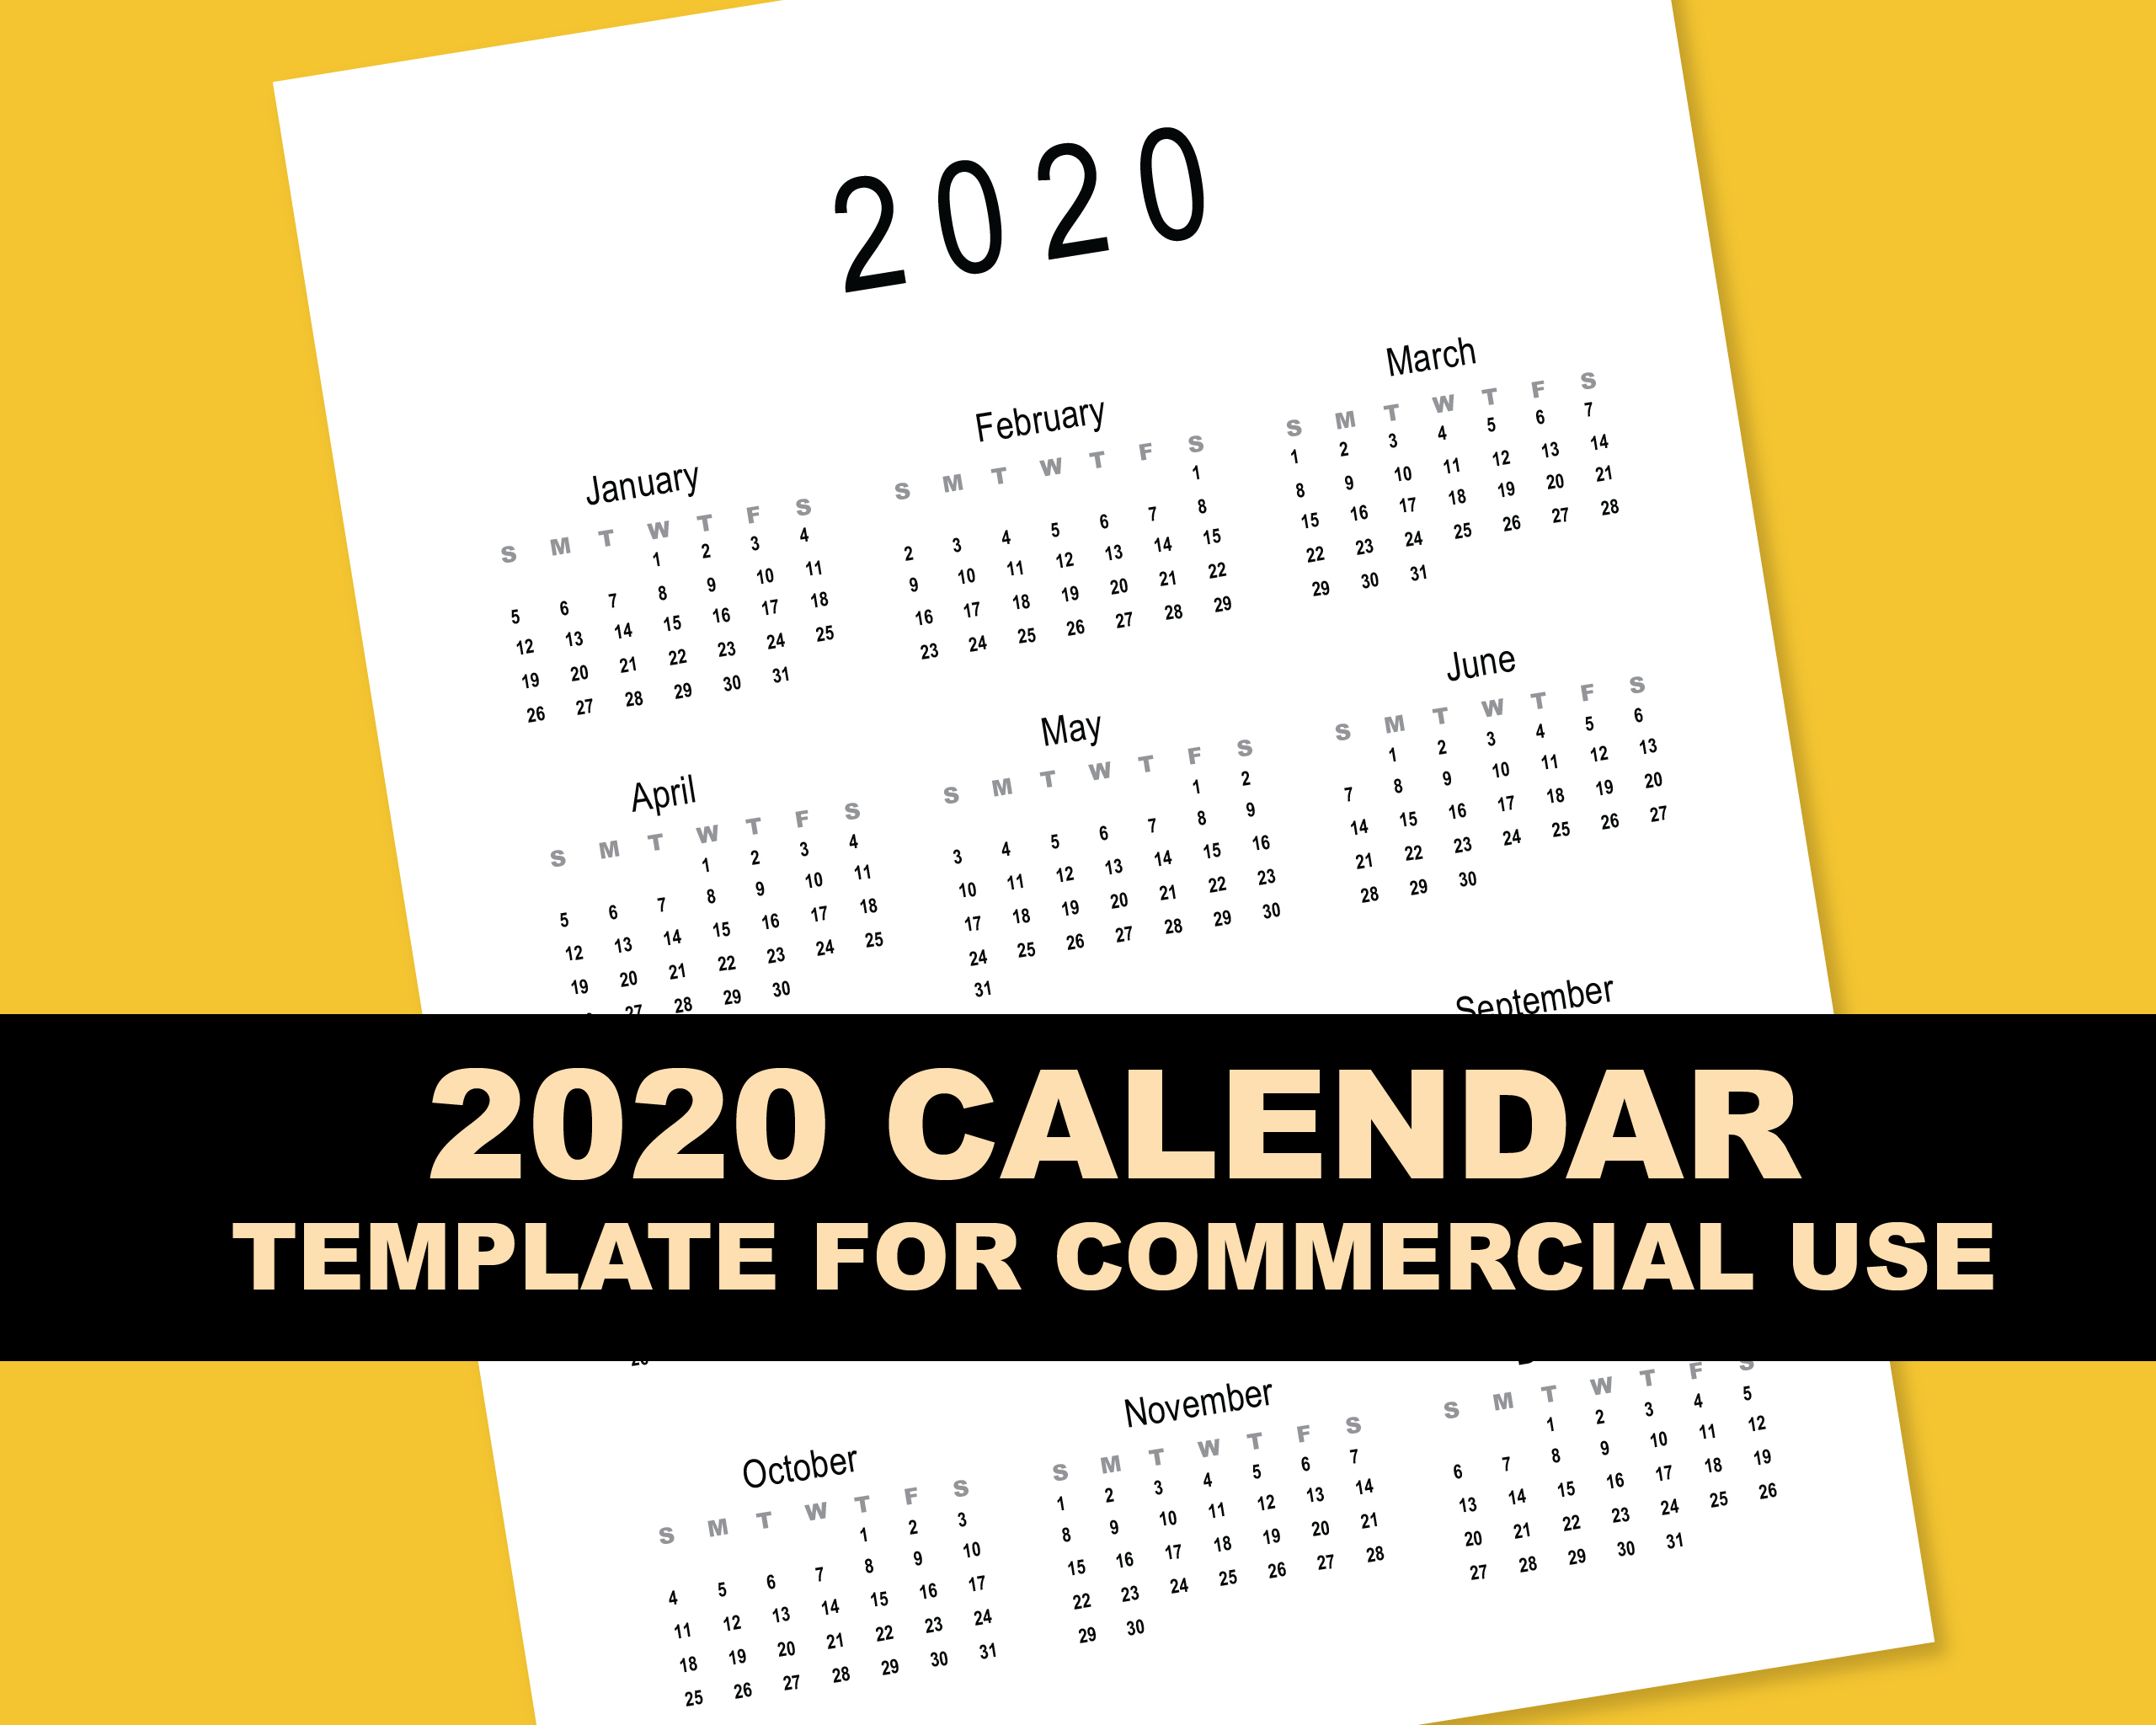 2020 Calendar Template for Commercial Use - PSD, EPS, PDF example image 8